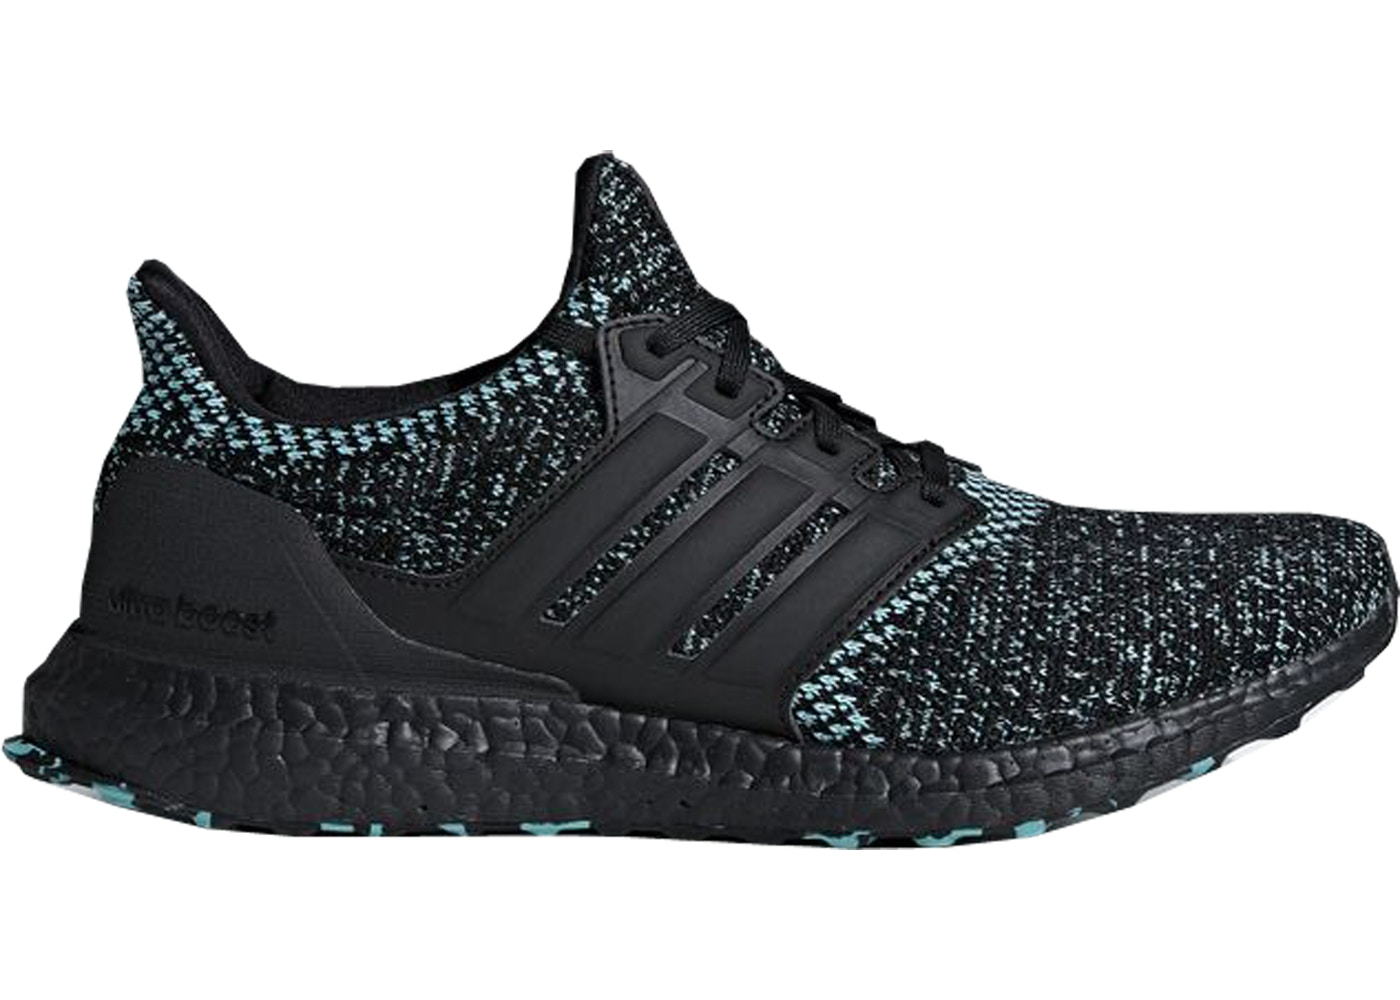 newest 90c3d 85337 adidas Ultra Boost Size 15 Shoes - Release Date